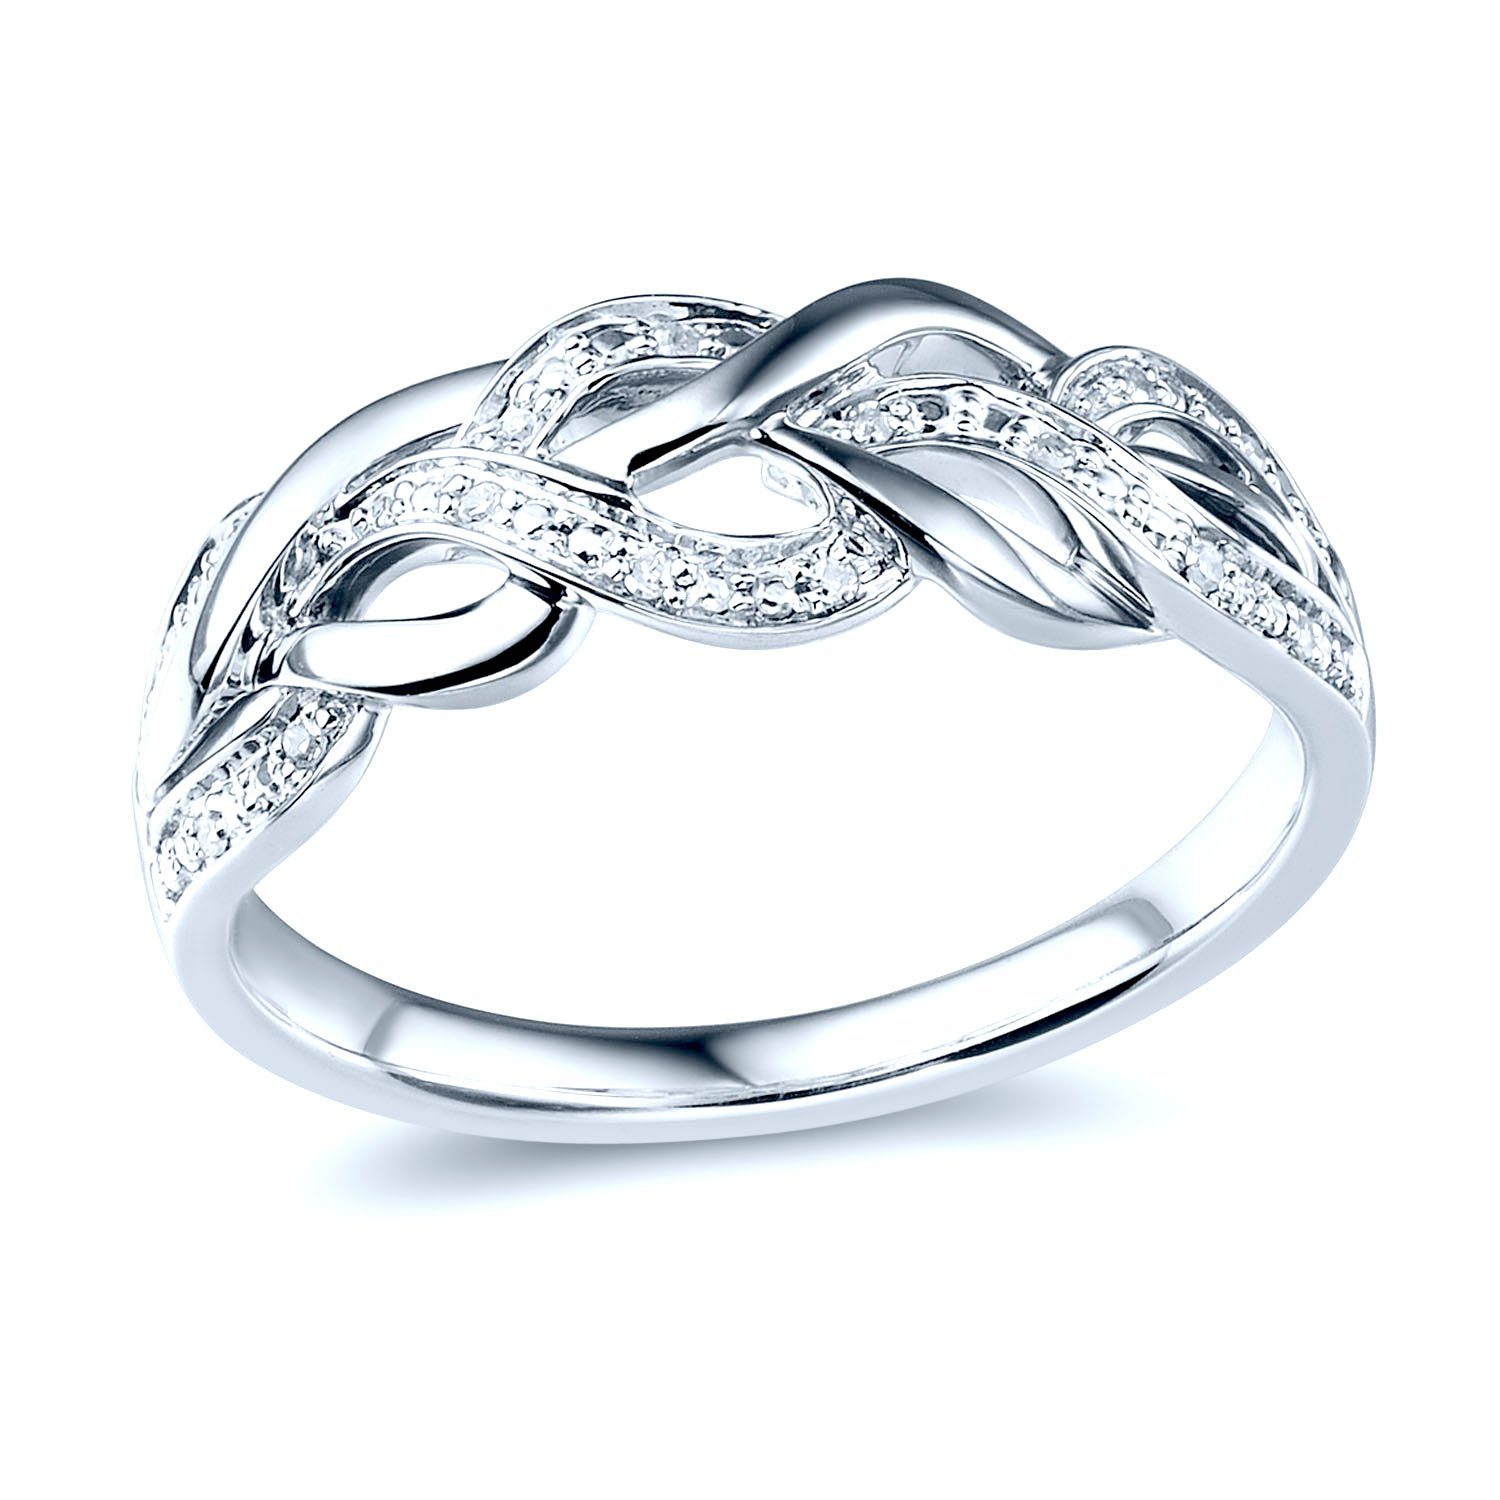 Diamond Wedding Anniversary Band in Rhodium Plated Sterling Silver